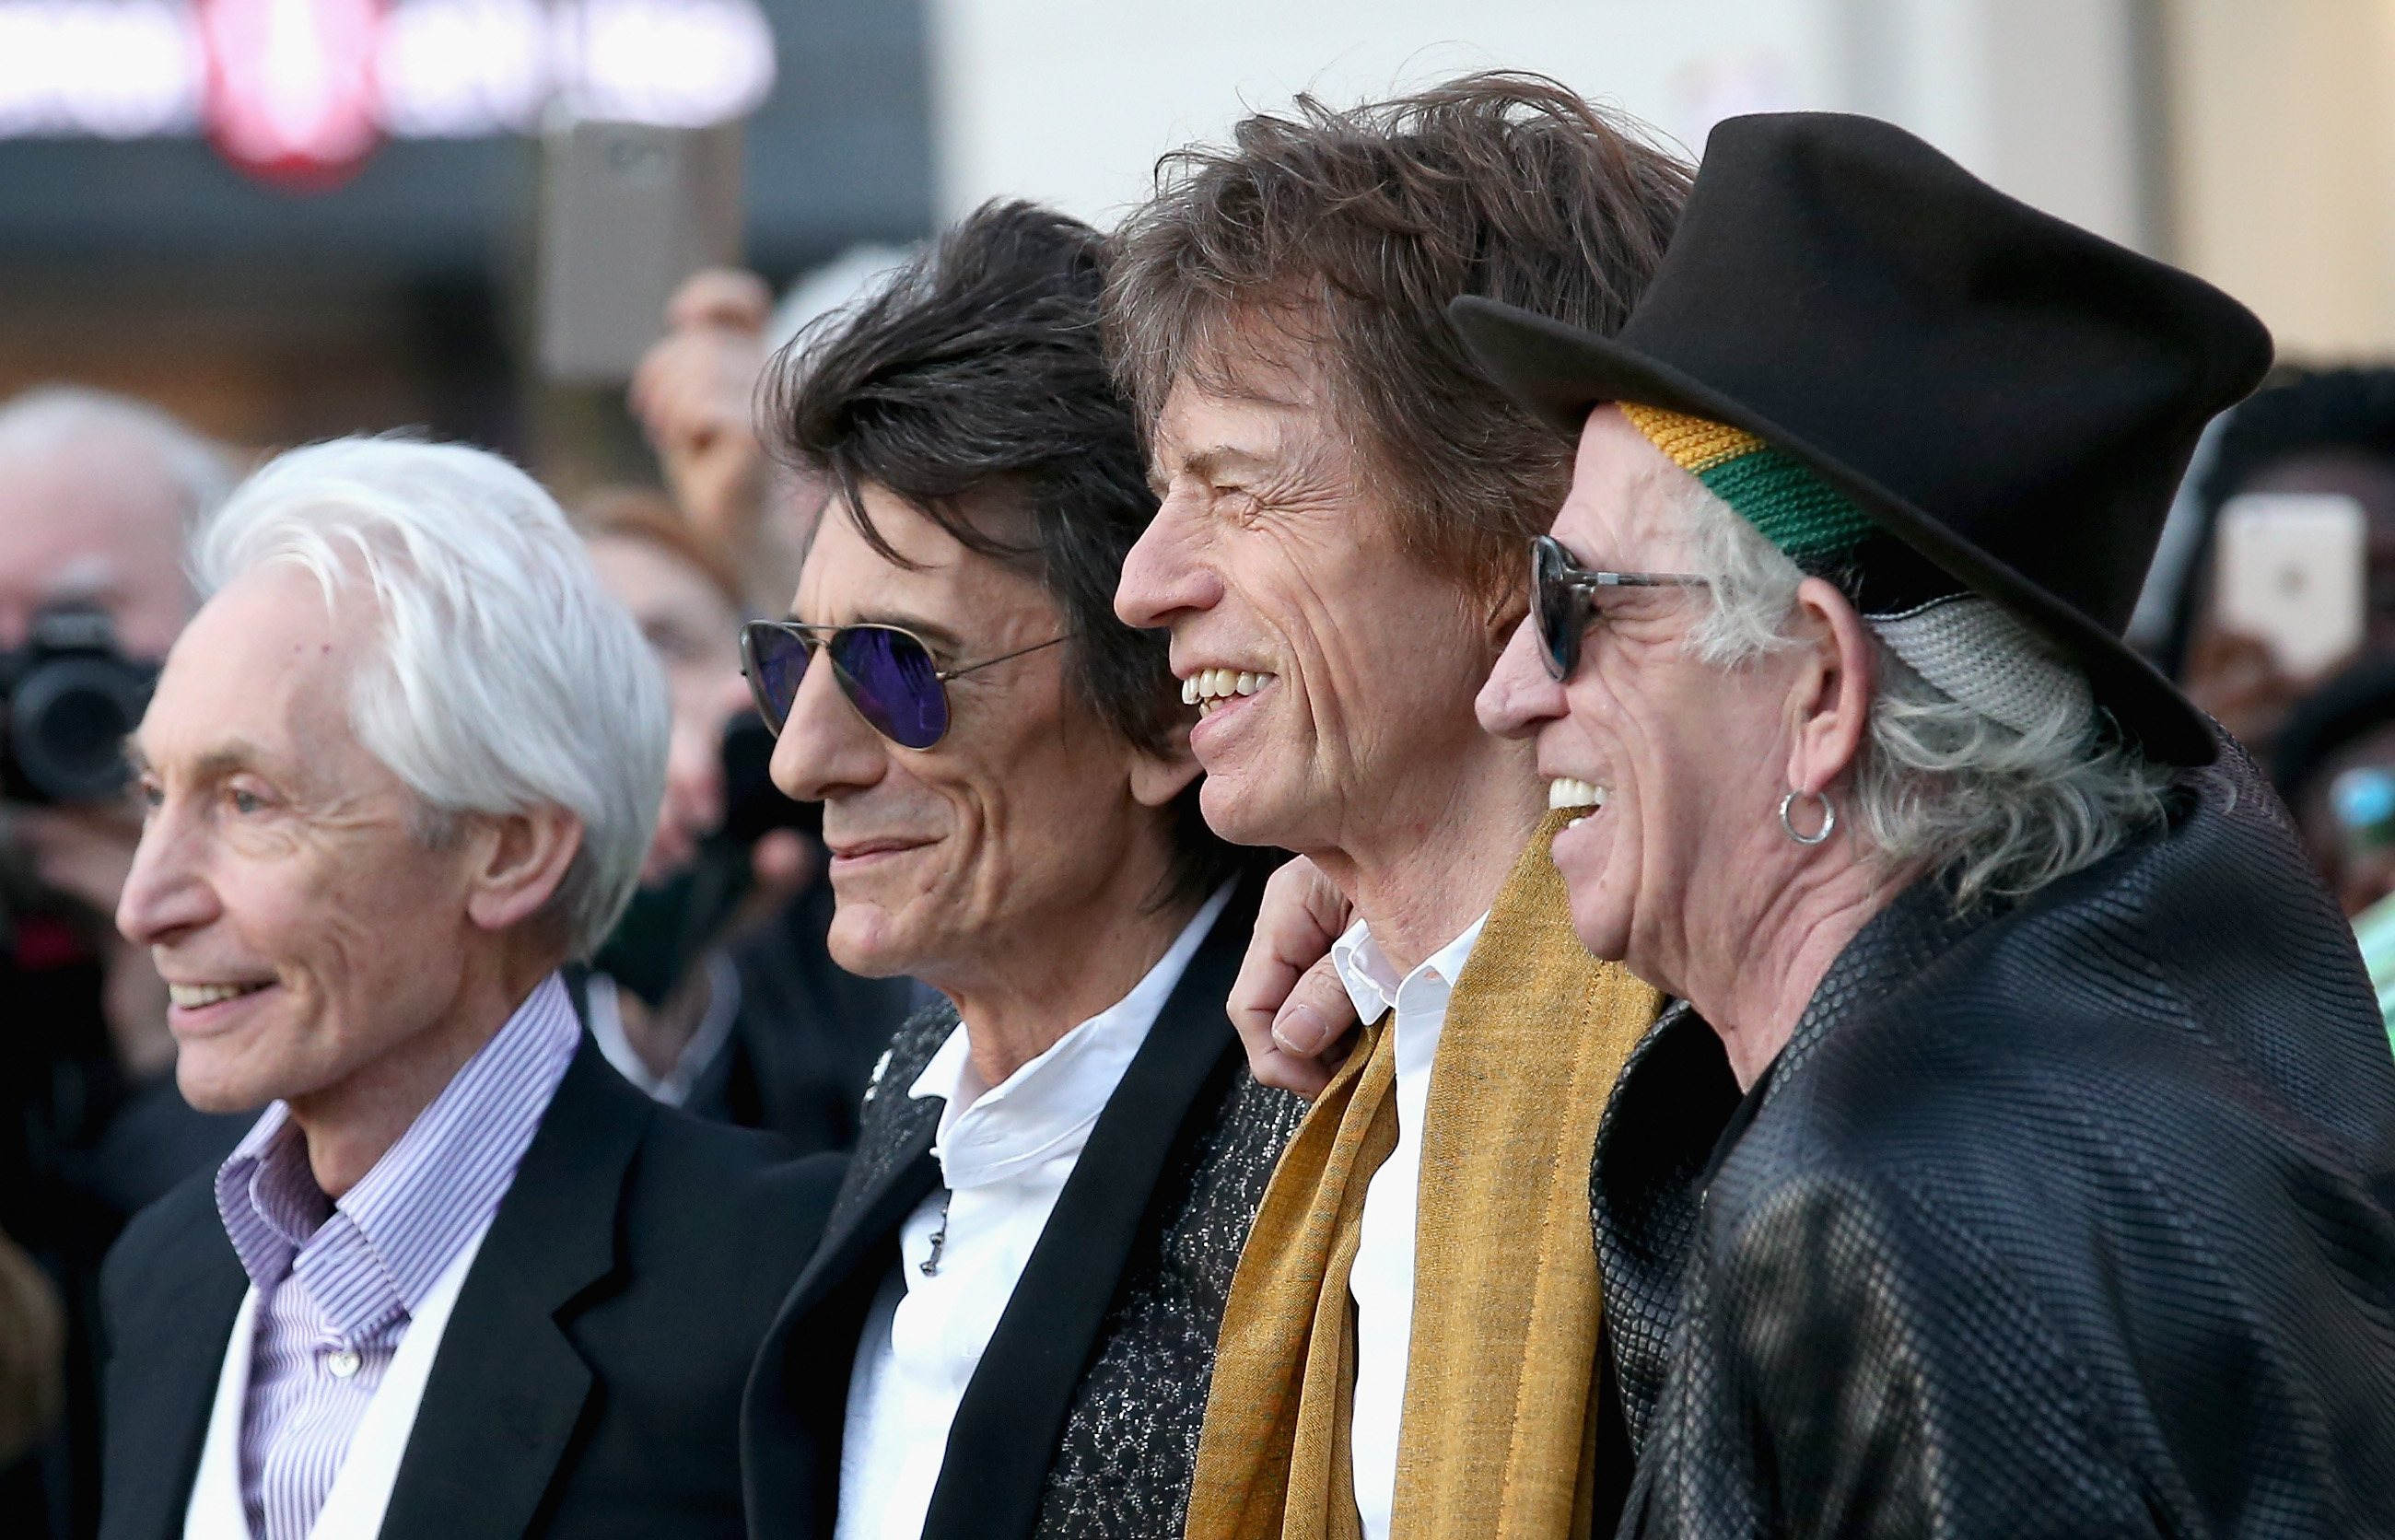 Charlie Watts, Ronnie Wood, Mick Jagger and Keith Richards arrive for the private view of 'The Rolling Stones: Exhibitionism' at the Saatchi Gallery on April 4, 2016 in London, England.